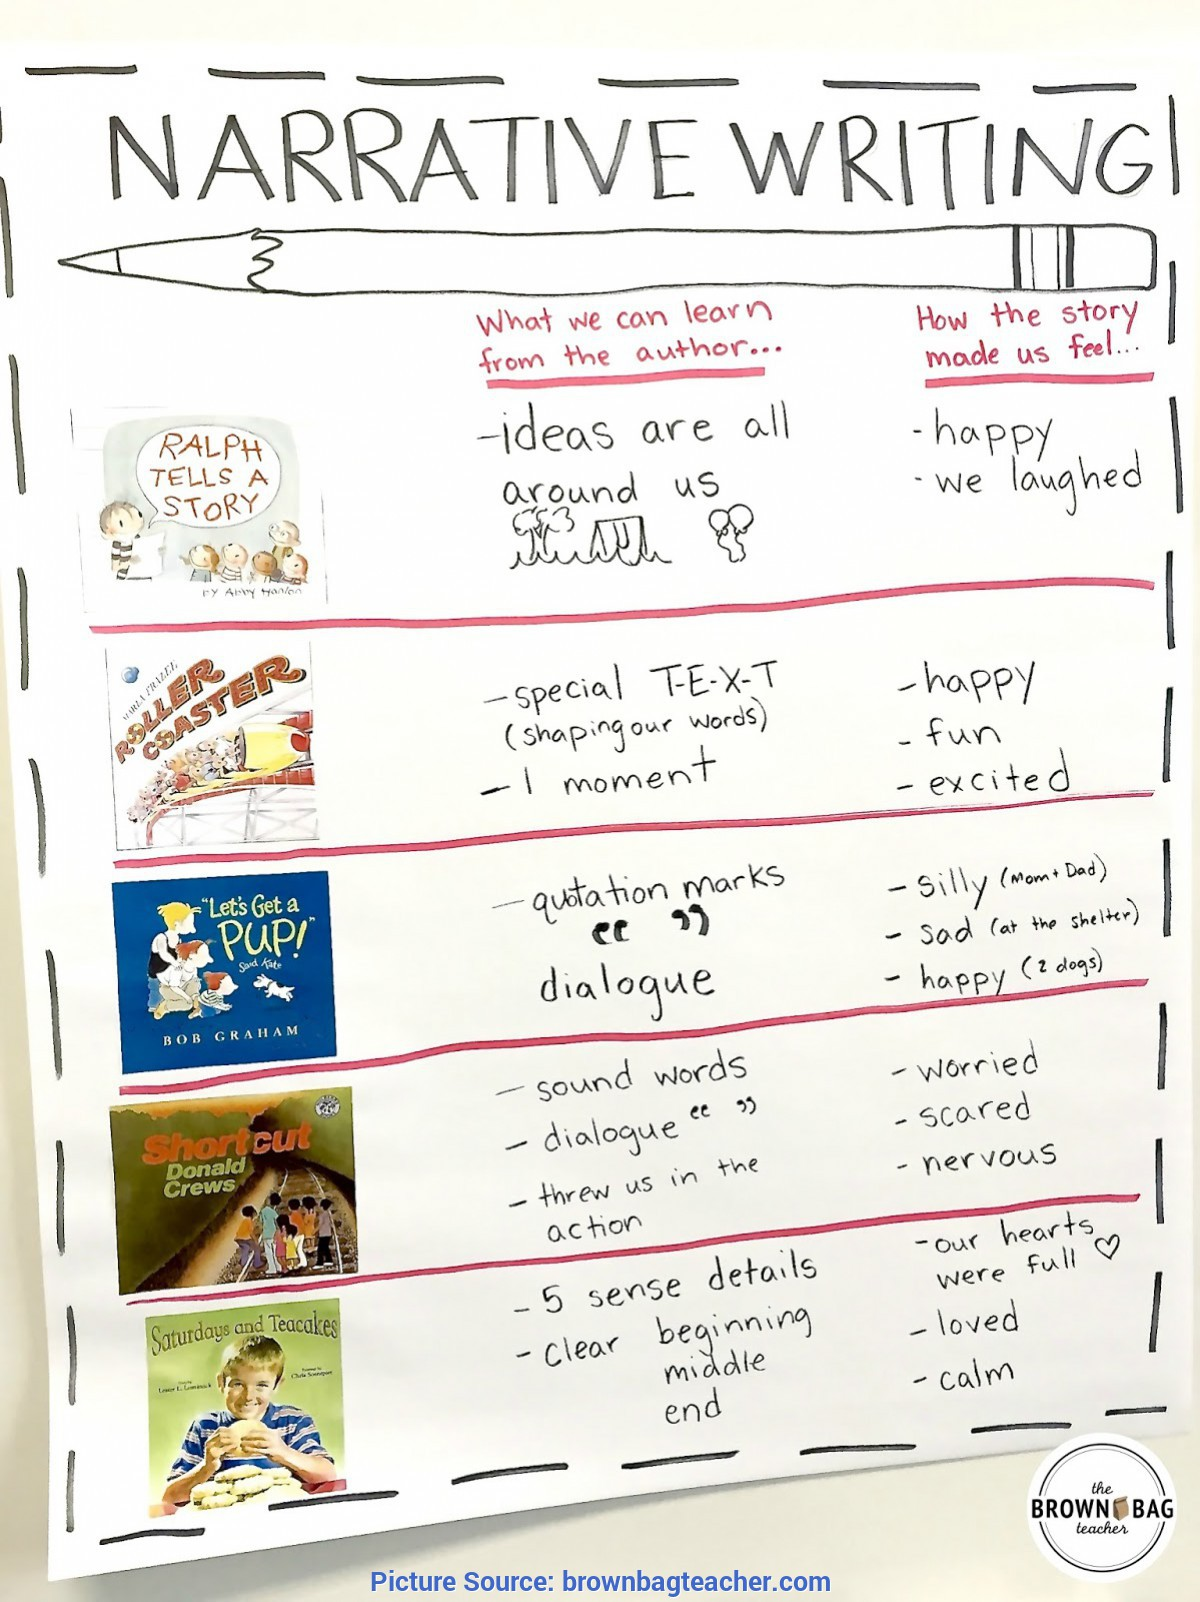 Great Narrative Writing 5Th Grade Lesson Plans Narrative Writing Mentor Texts - The Brown Bag Tea